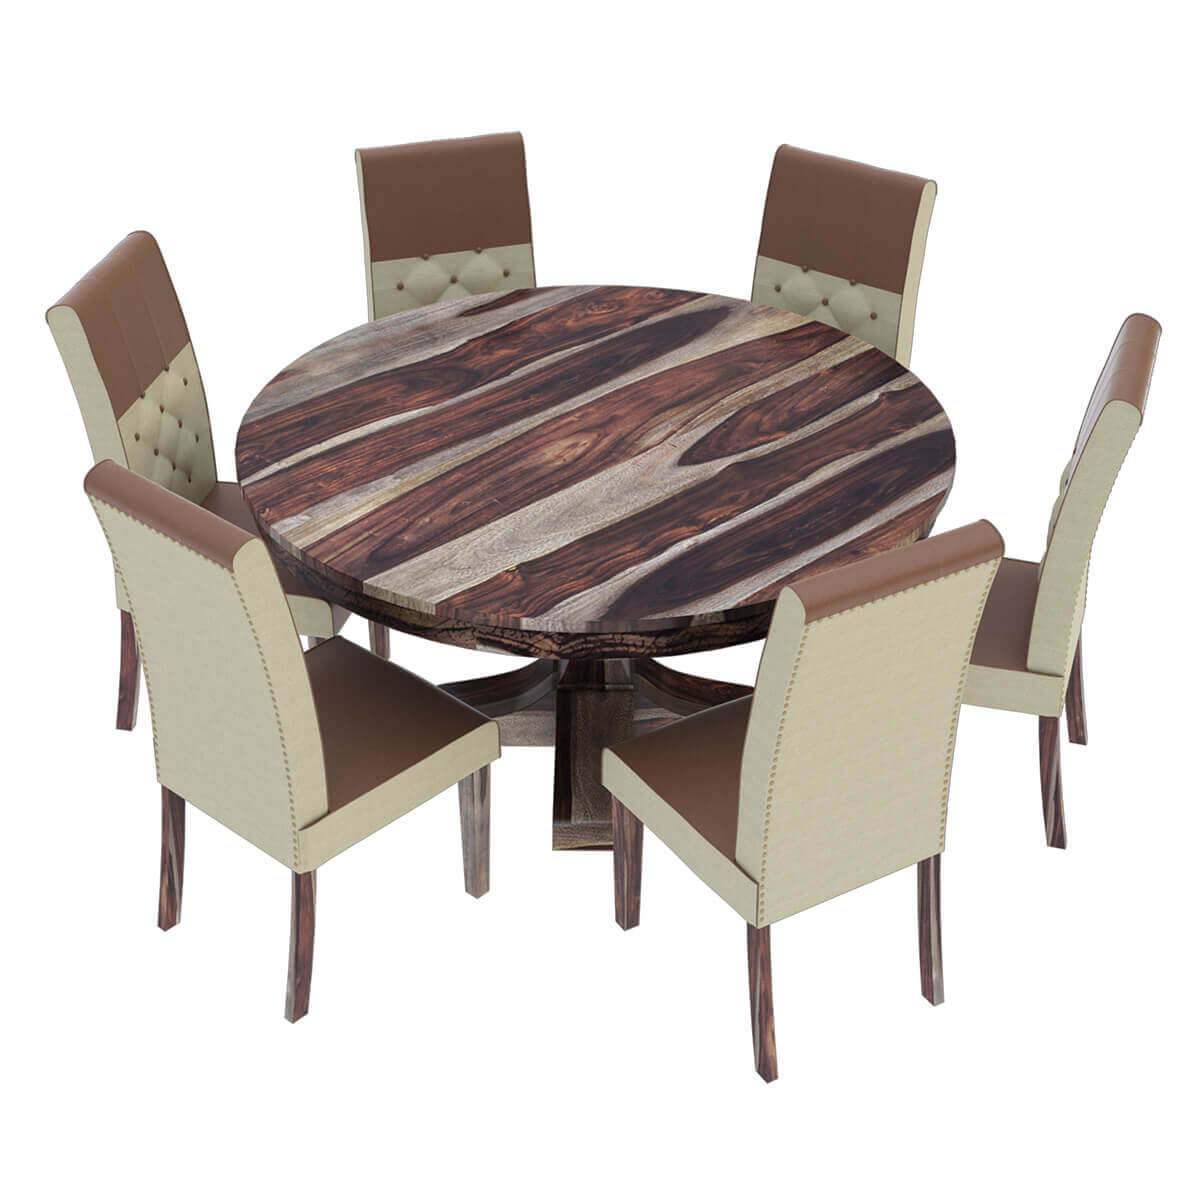 Round Dining Table With Fabric Chairs: Hosford Handcrafted Solid Wood Round Dining Table And 6